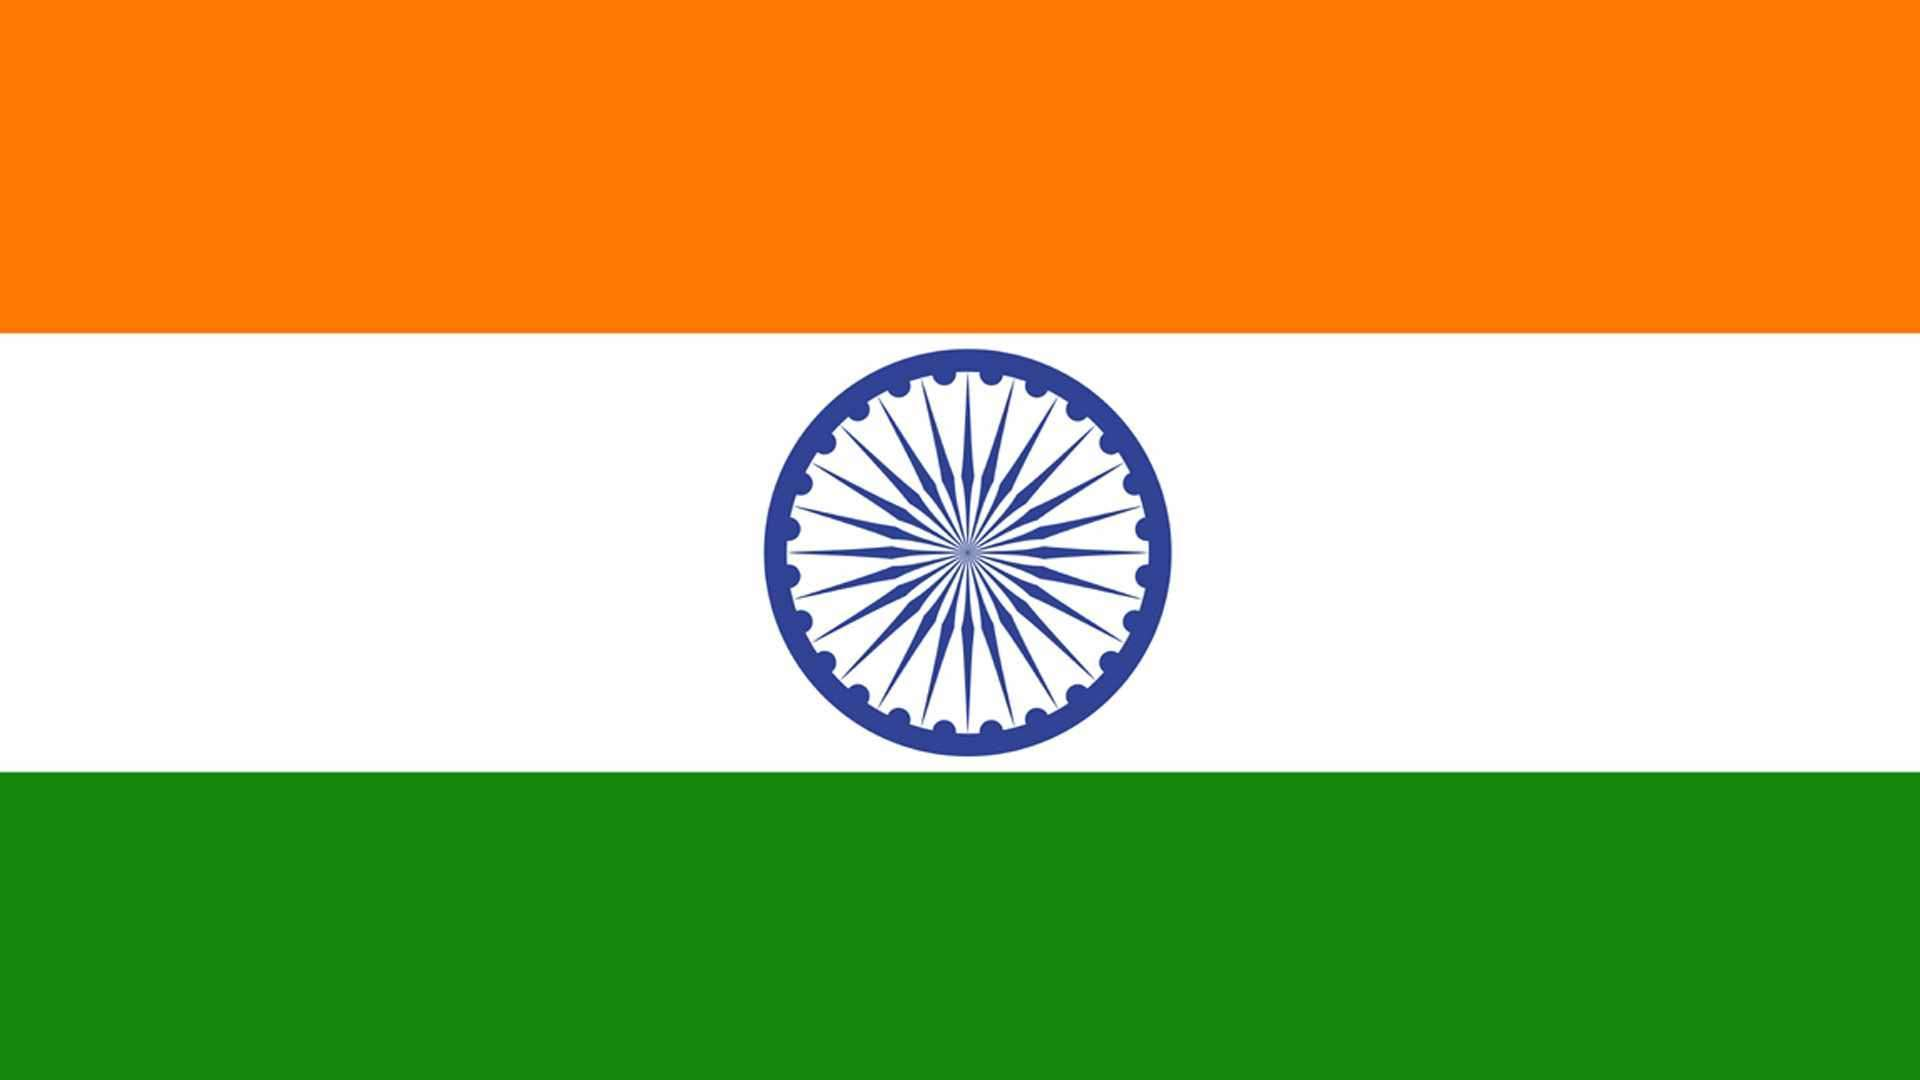 Wallpaper download india -  Download Indian Flag Hd Wallpapers From 2016 Gallery